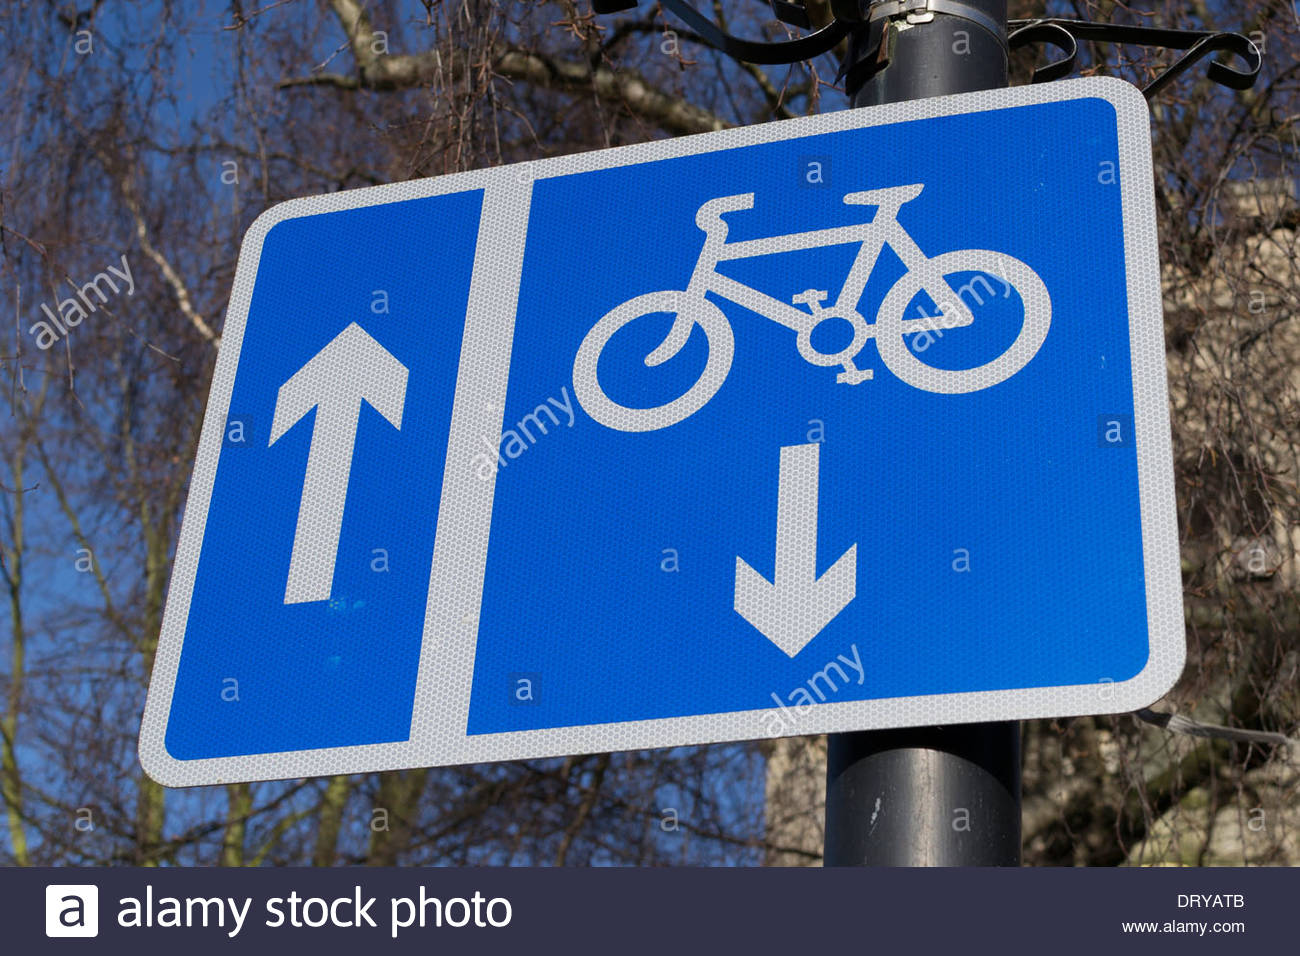 Combined one way vehicle sign with opposing cycle lane - Stock Image